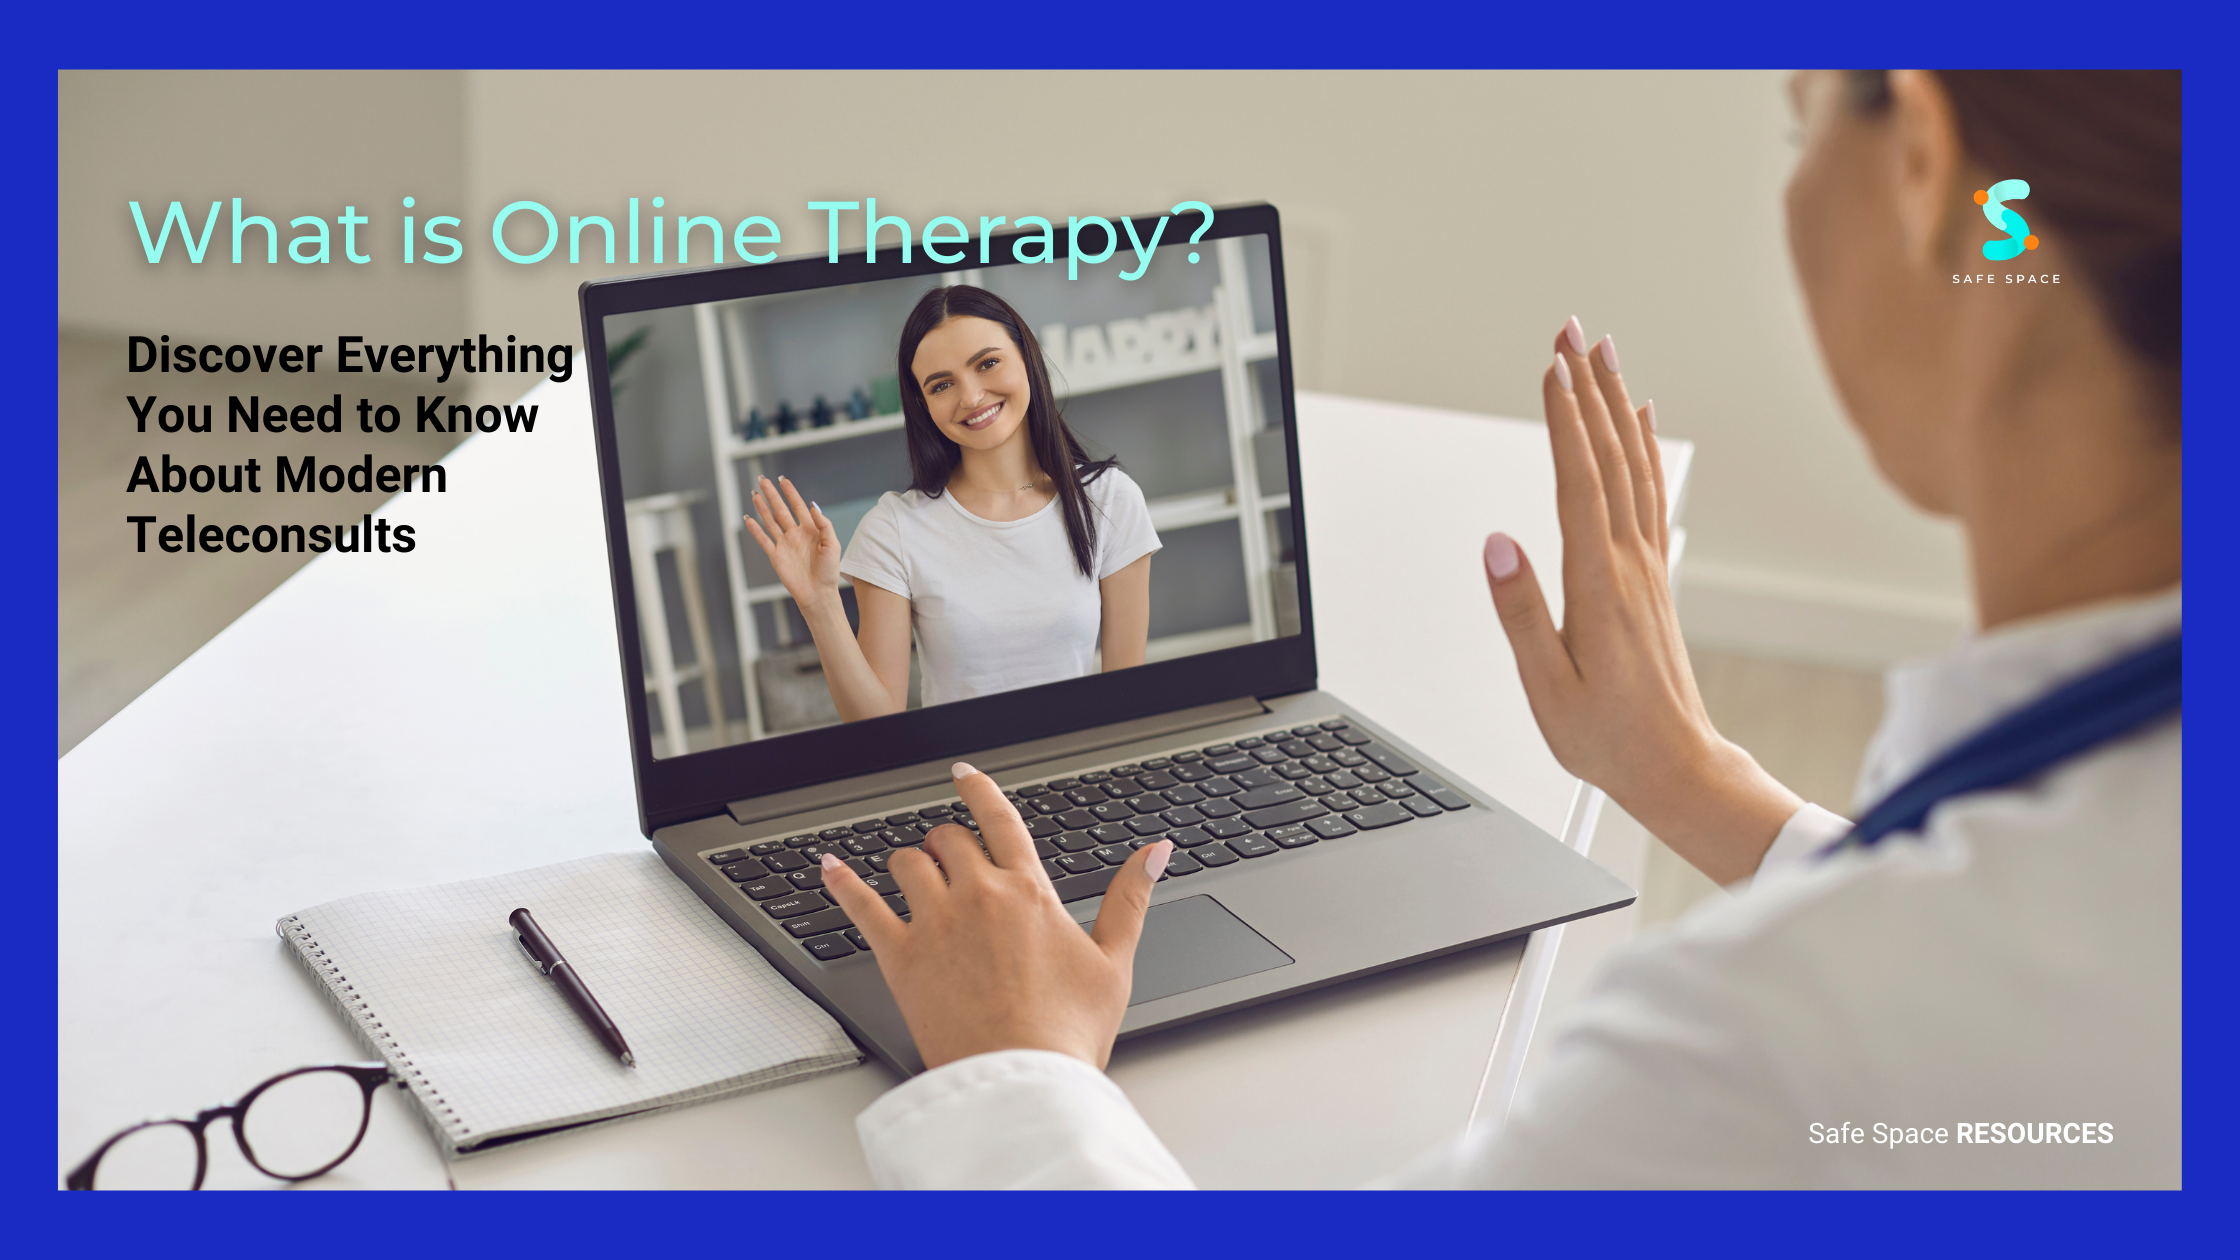 Safe Space -What is Online Therapy